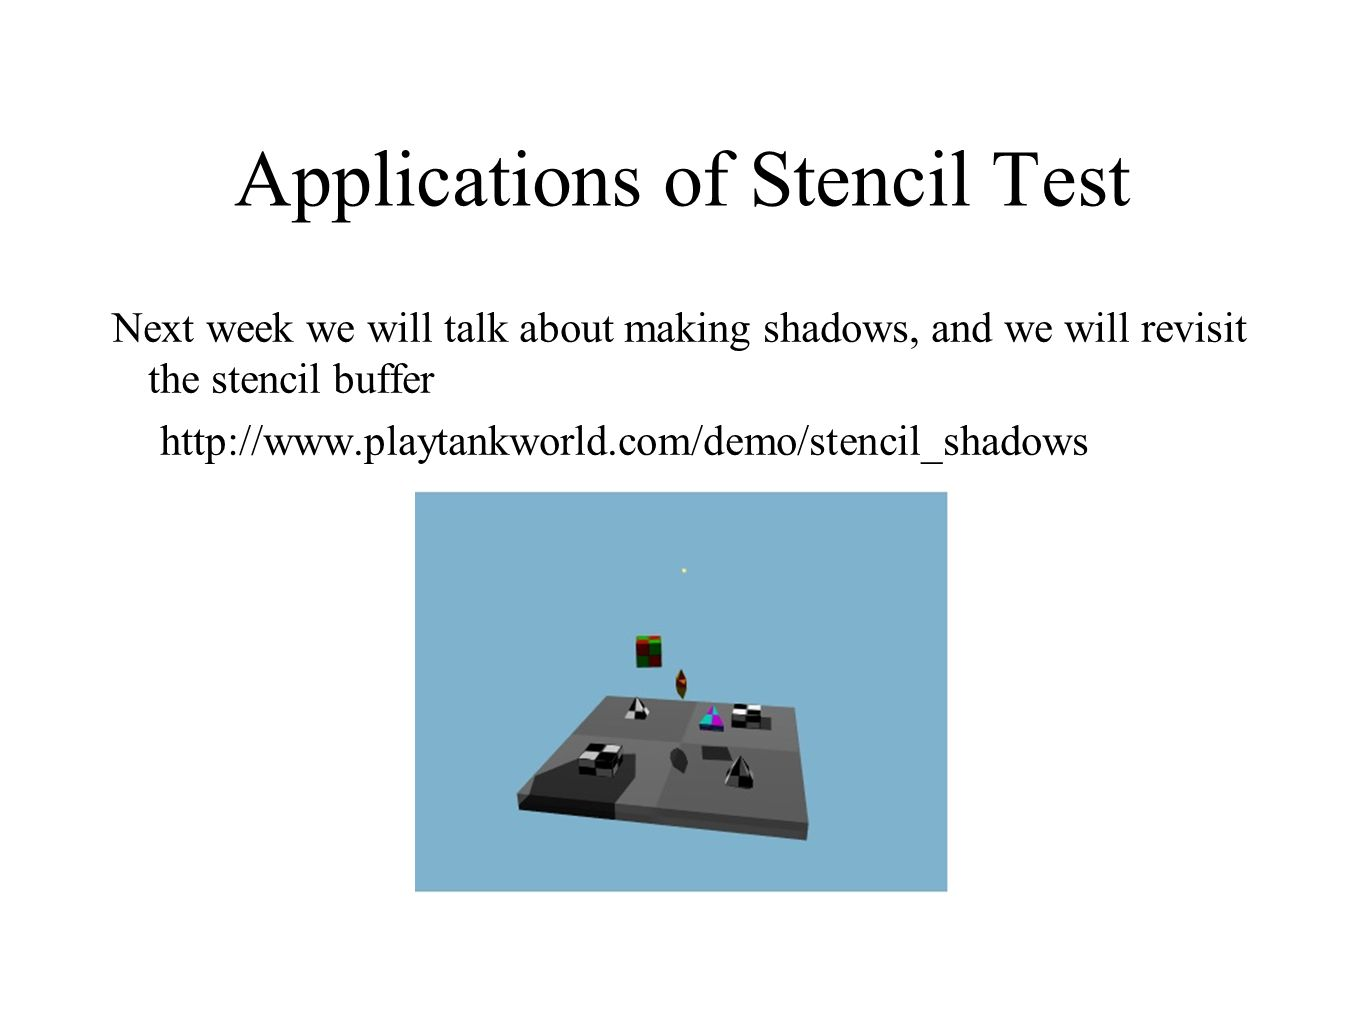 Applications of Stencil Test Next week we will talk about making shadows, and we will revisit the stencil buffer http://www.playtankworld.com/demo/ste